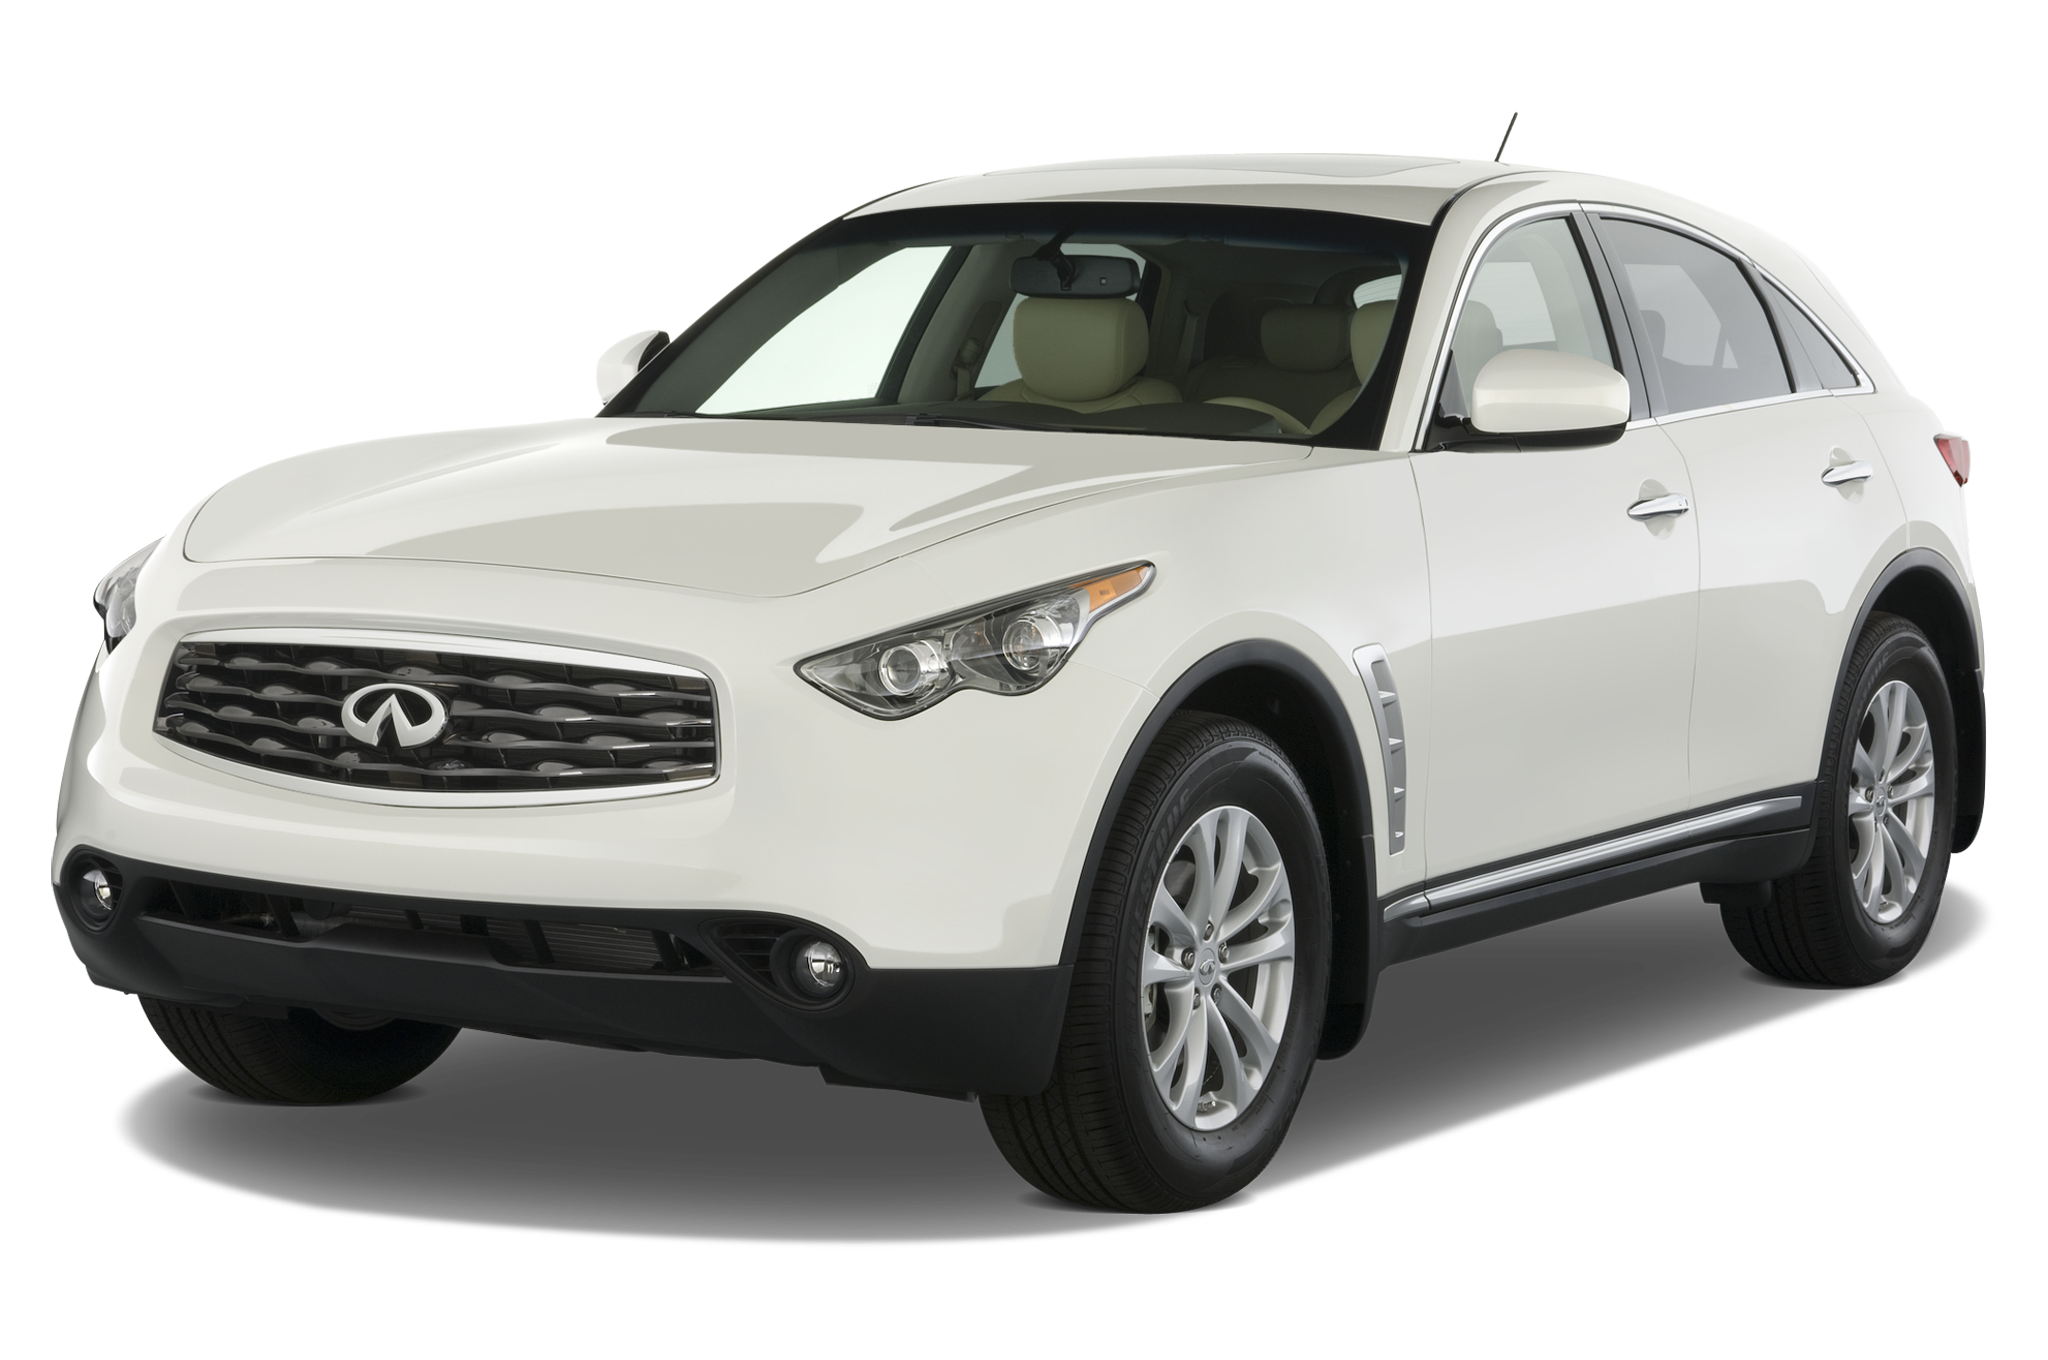 infiniti photos suv infinity specs used and photo